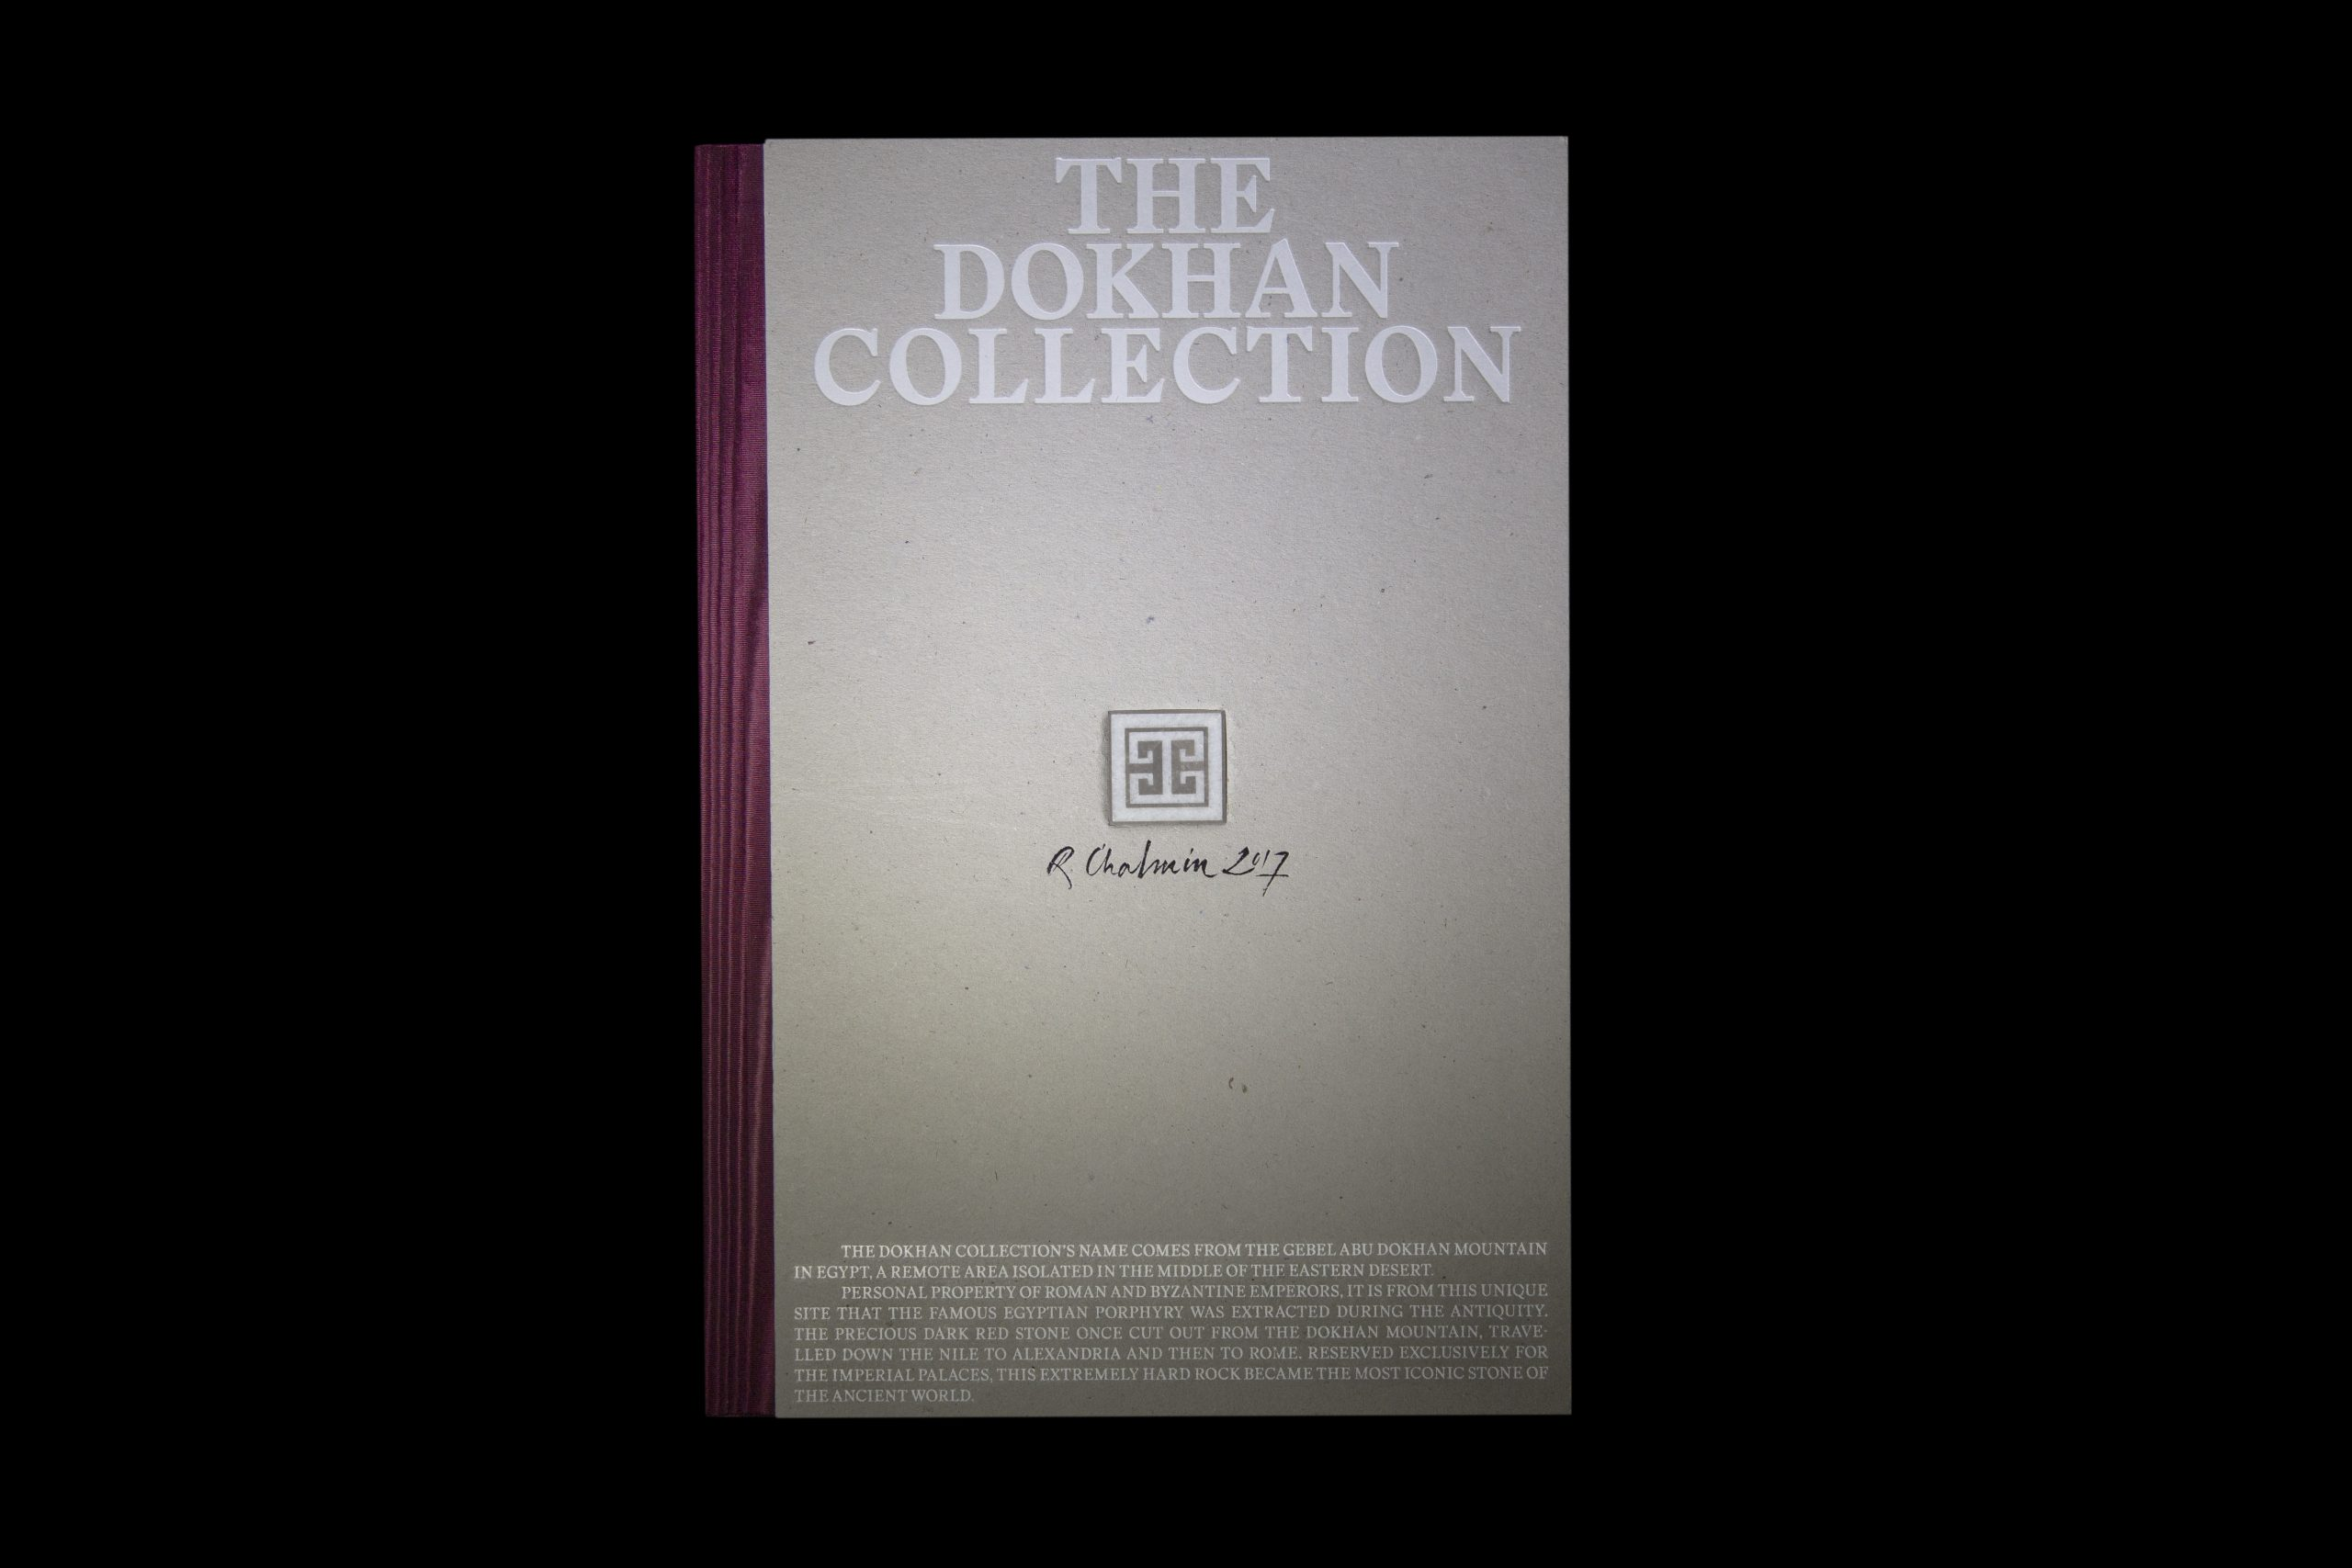 Regular Animal creates a book for The Dokhan Collection, a compilation of The Dokhan Company's work, founded by Raphaël Chalmin.